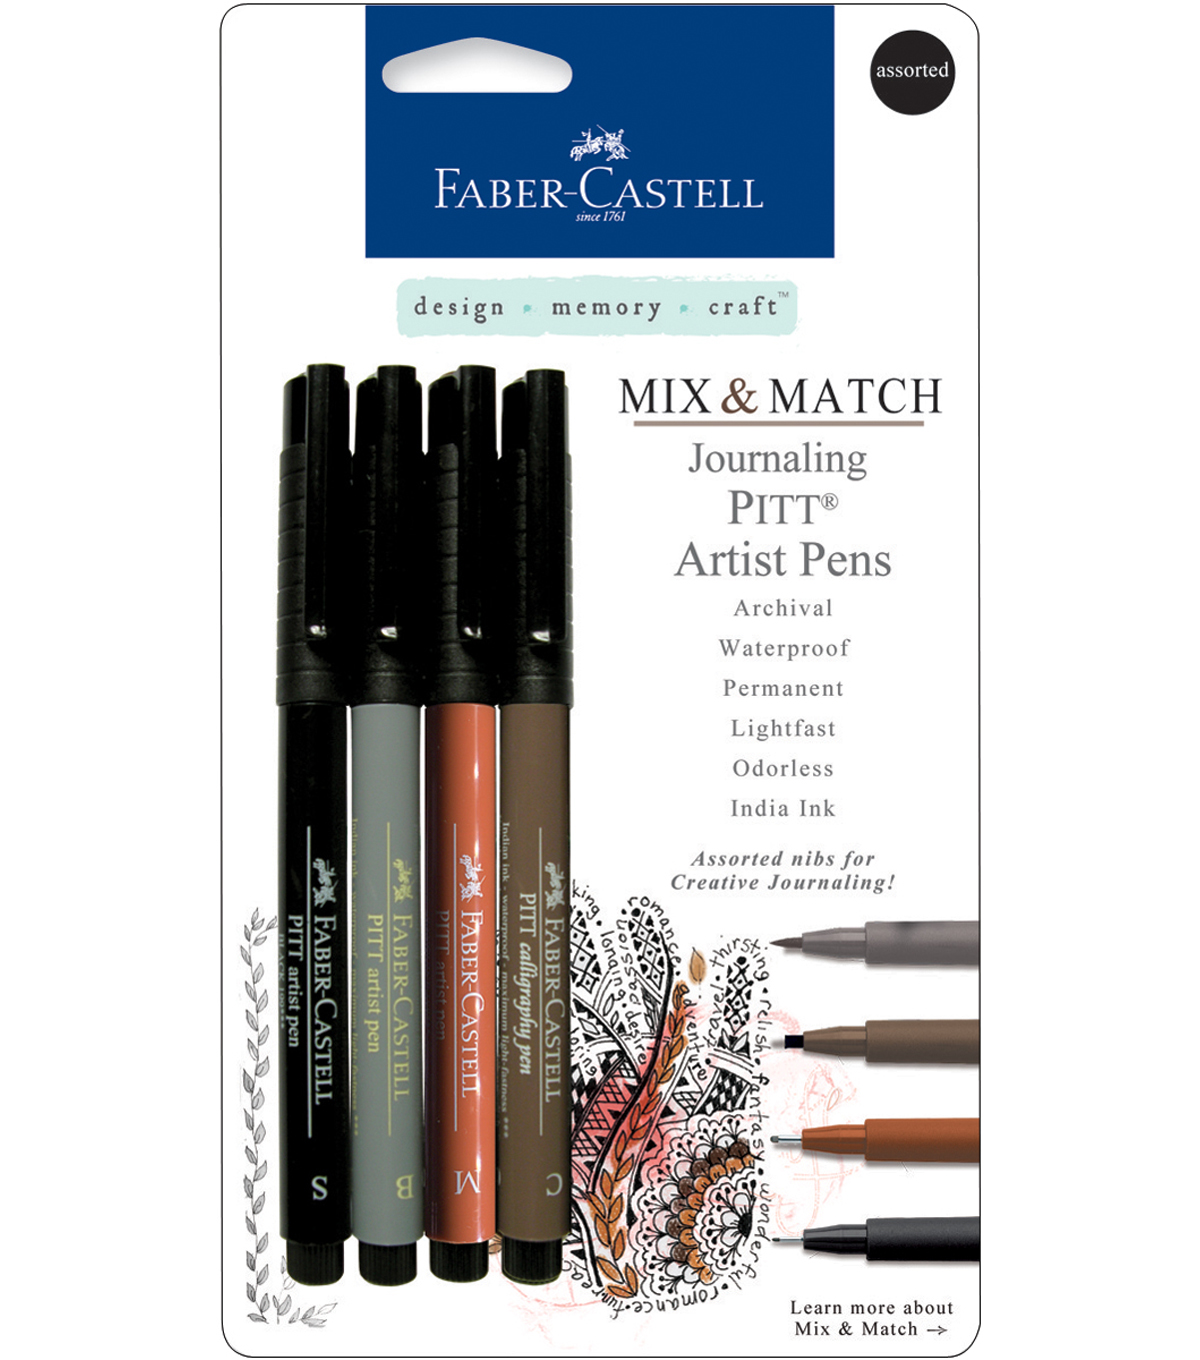 Faber-Castell design-memory-craft Mix & Match Pitt Artist Pens